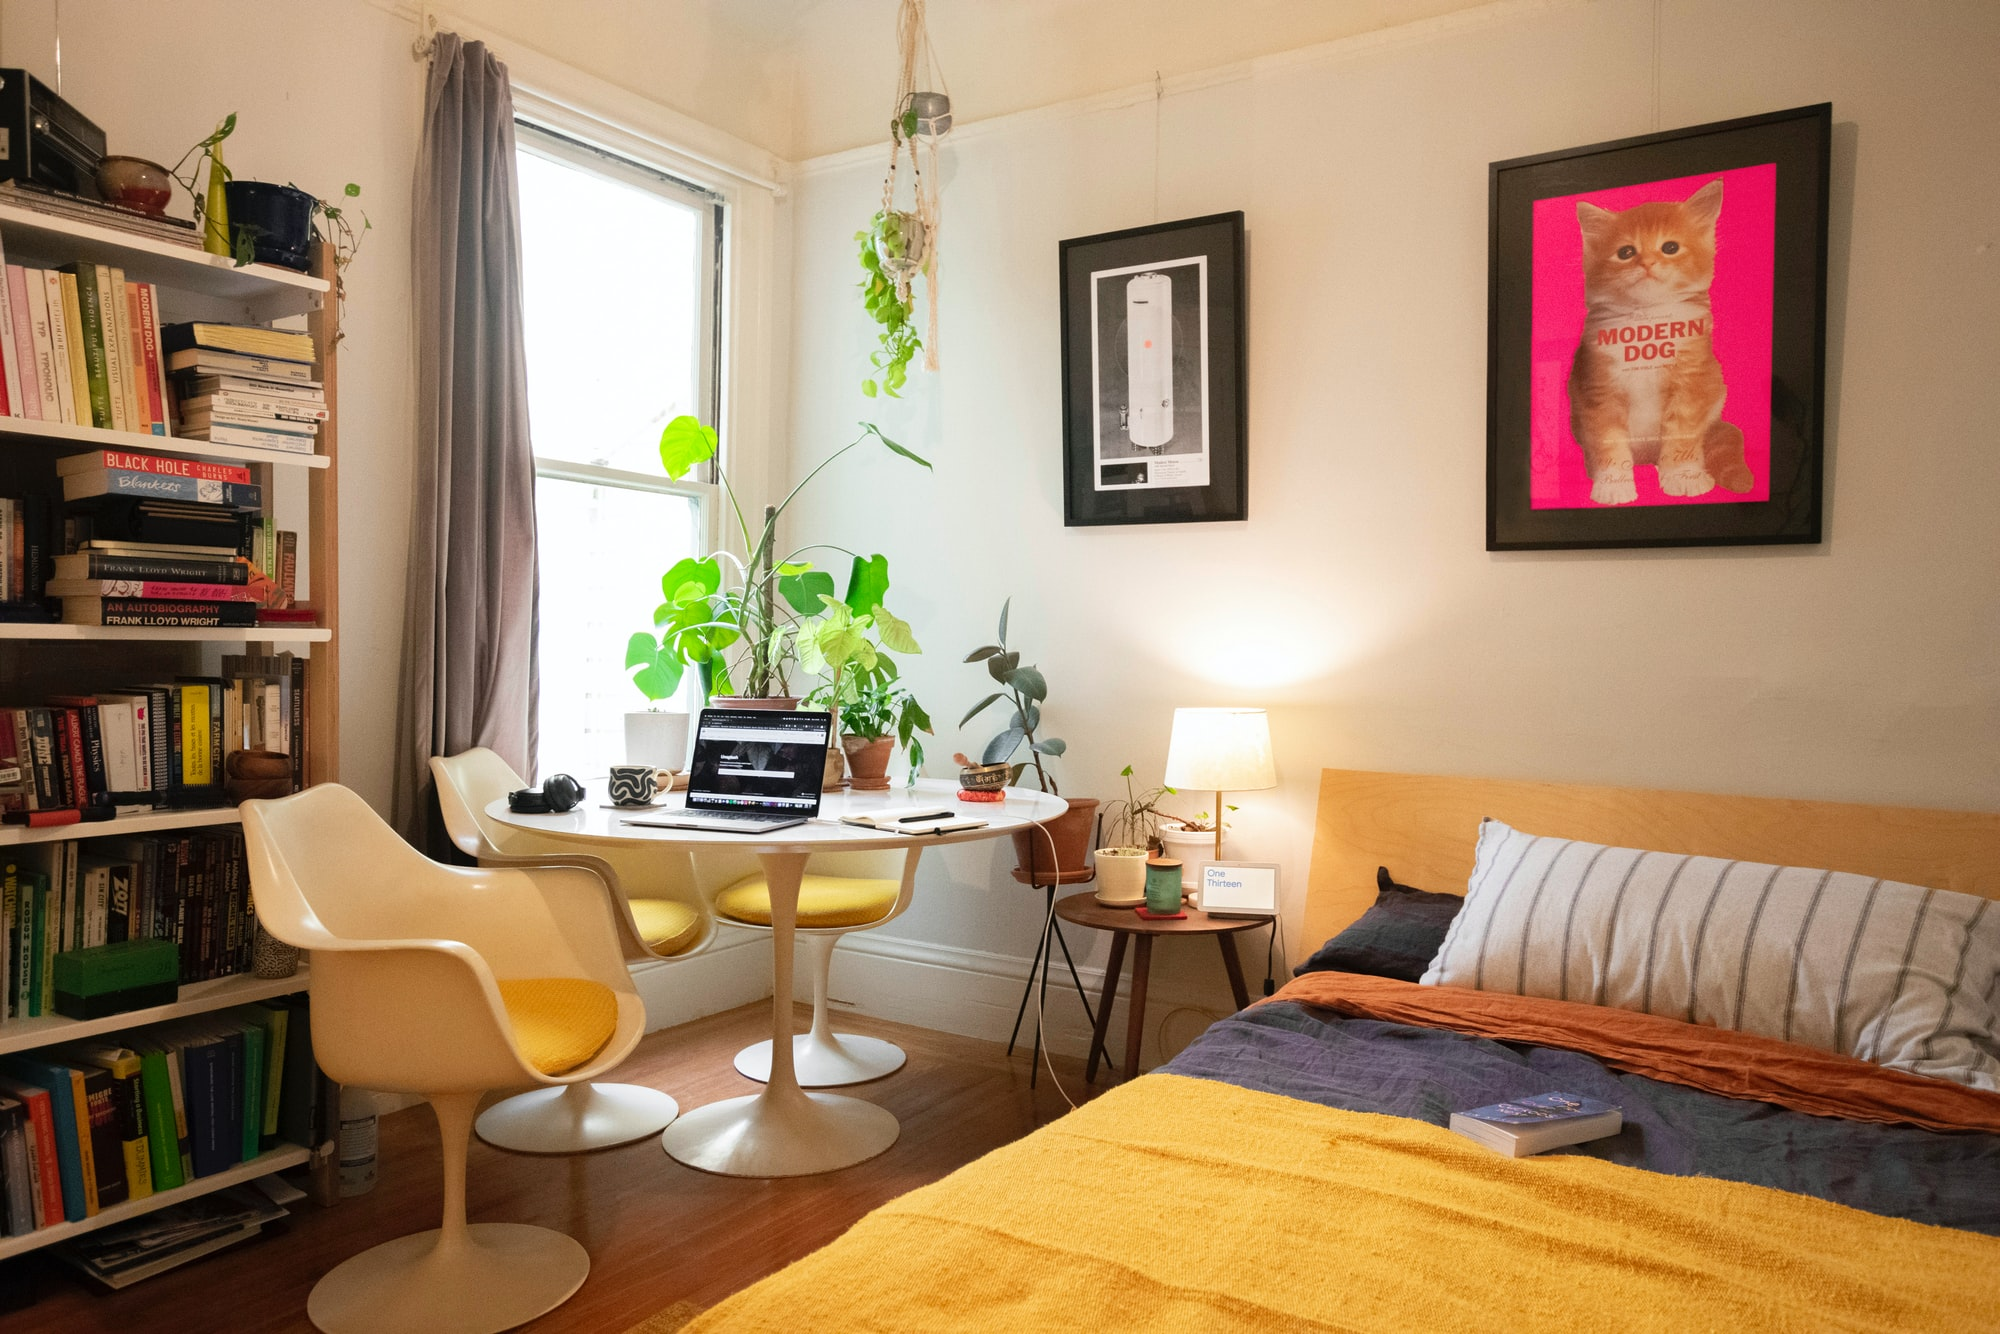 Working from home office in a bedroom